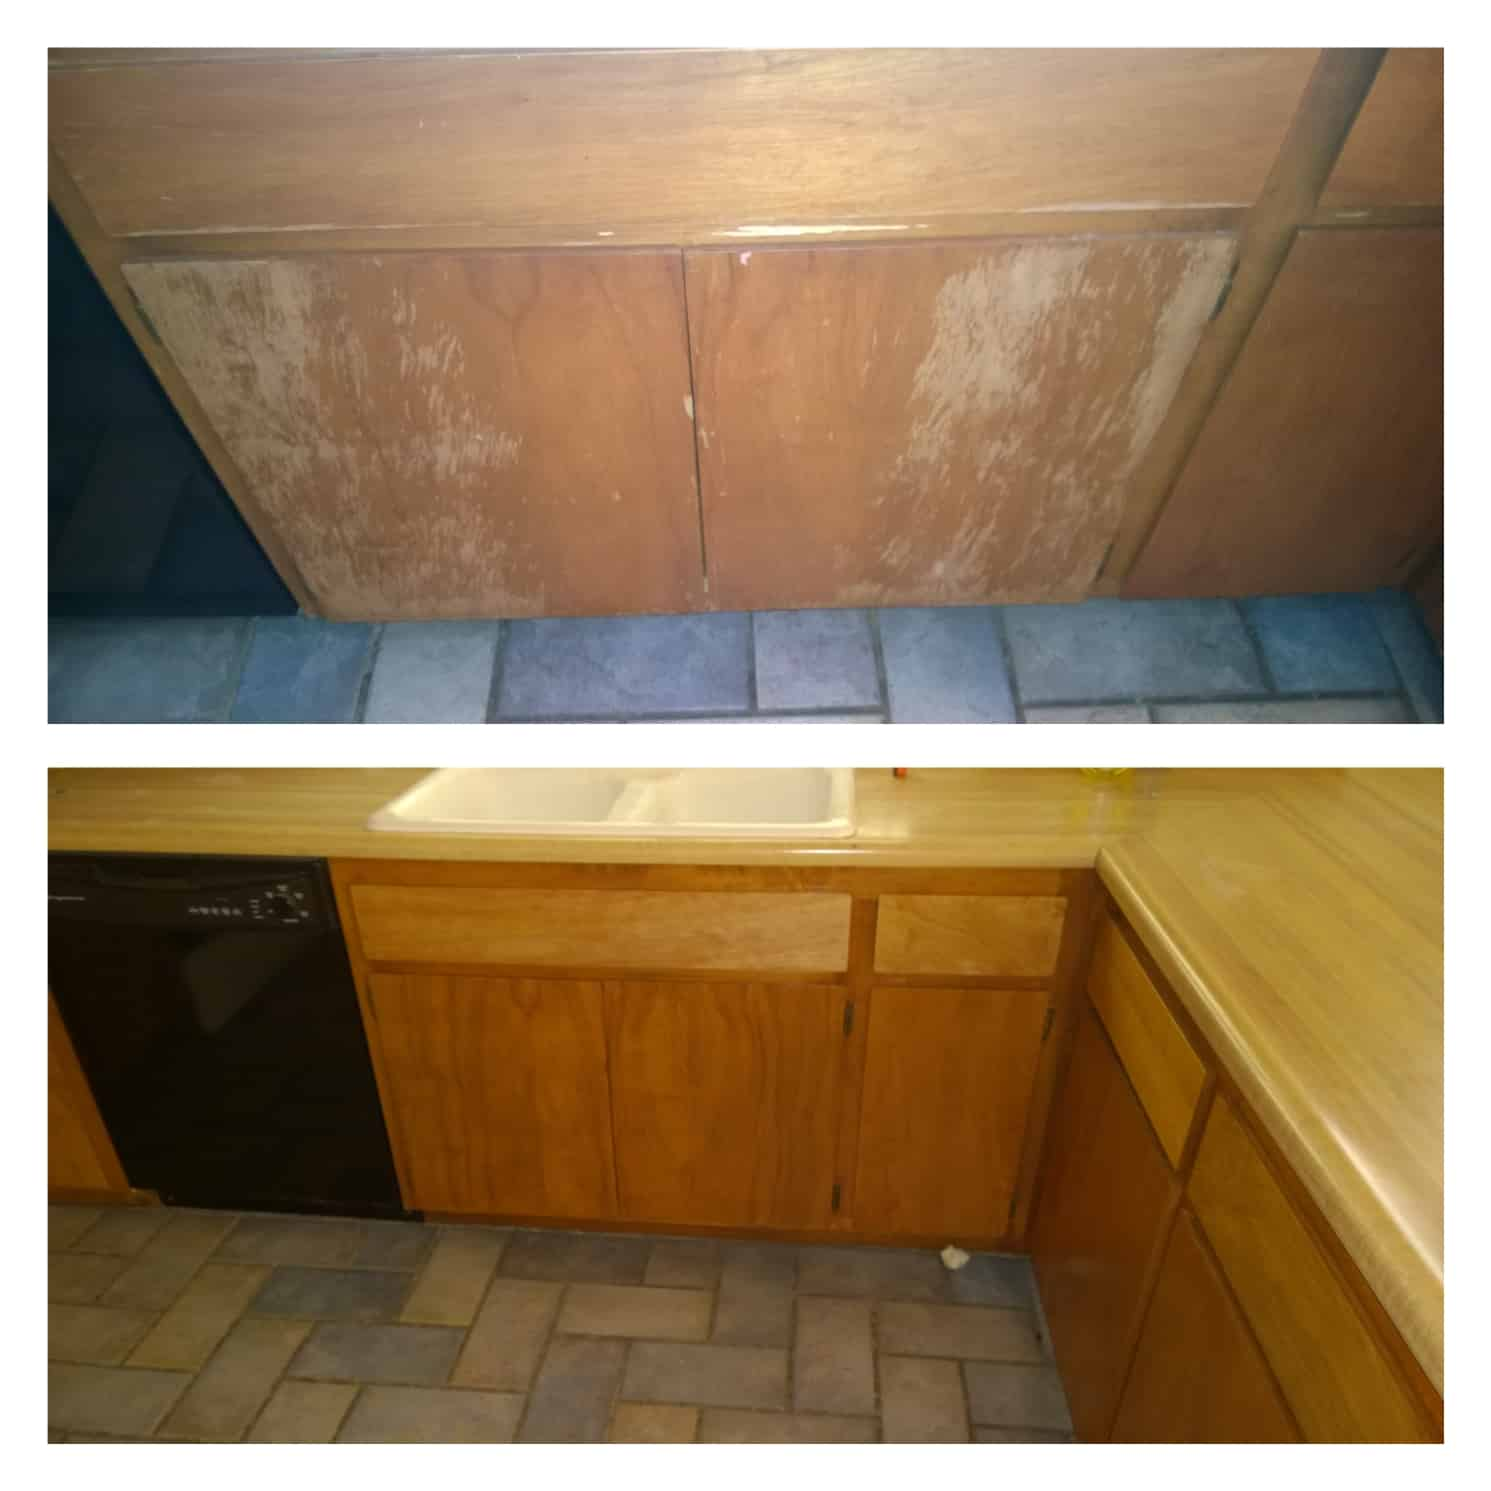 Cabinet Refinishing isn't Only for Kitchen Cabinets